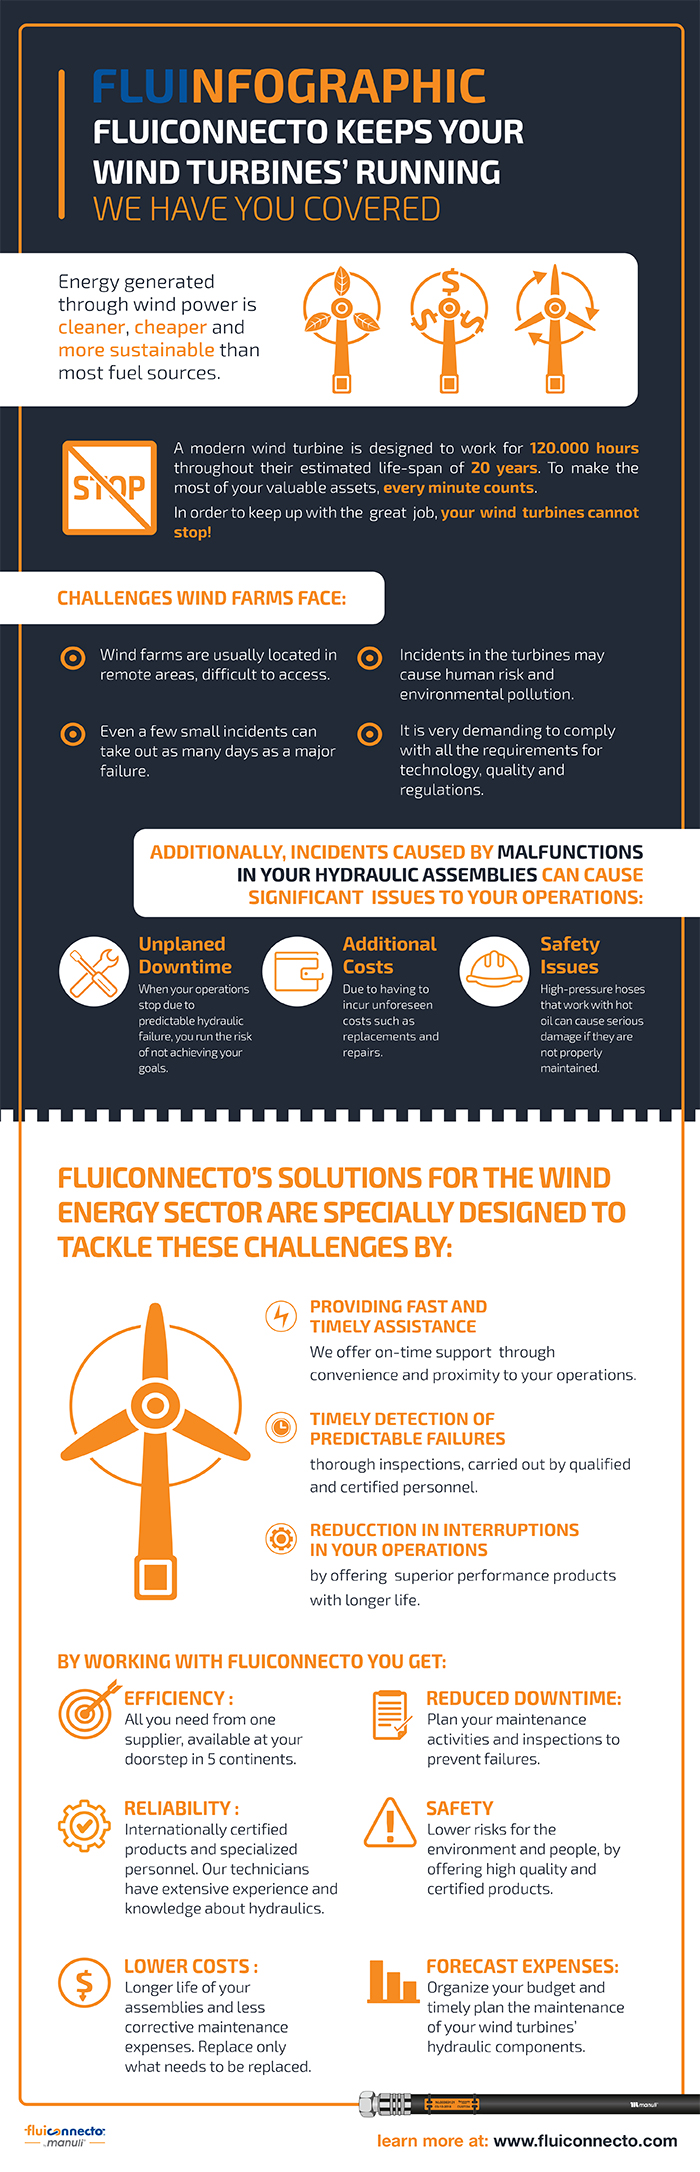 fluinfographic wind farms